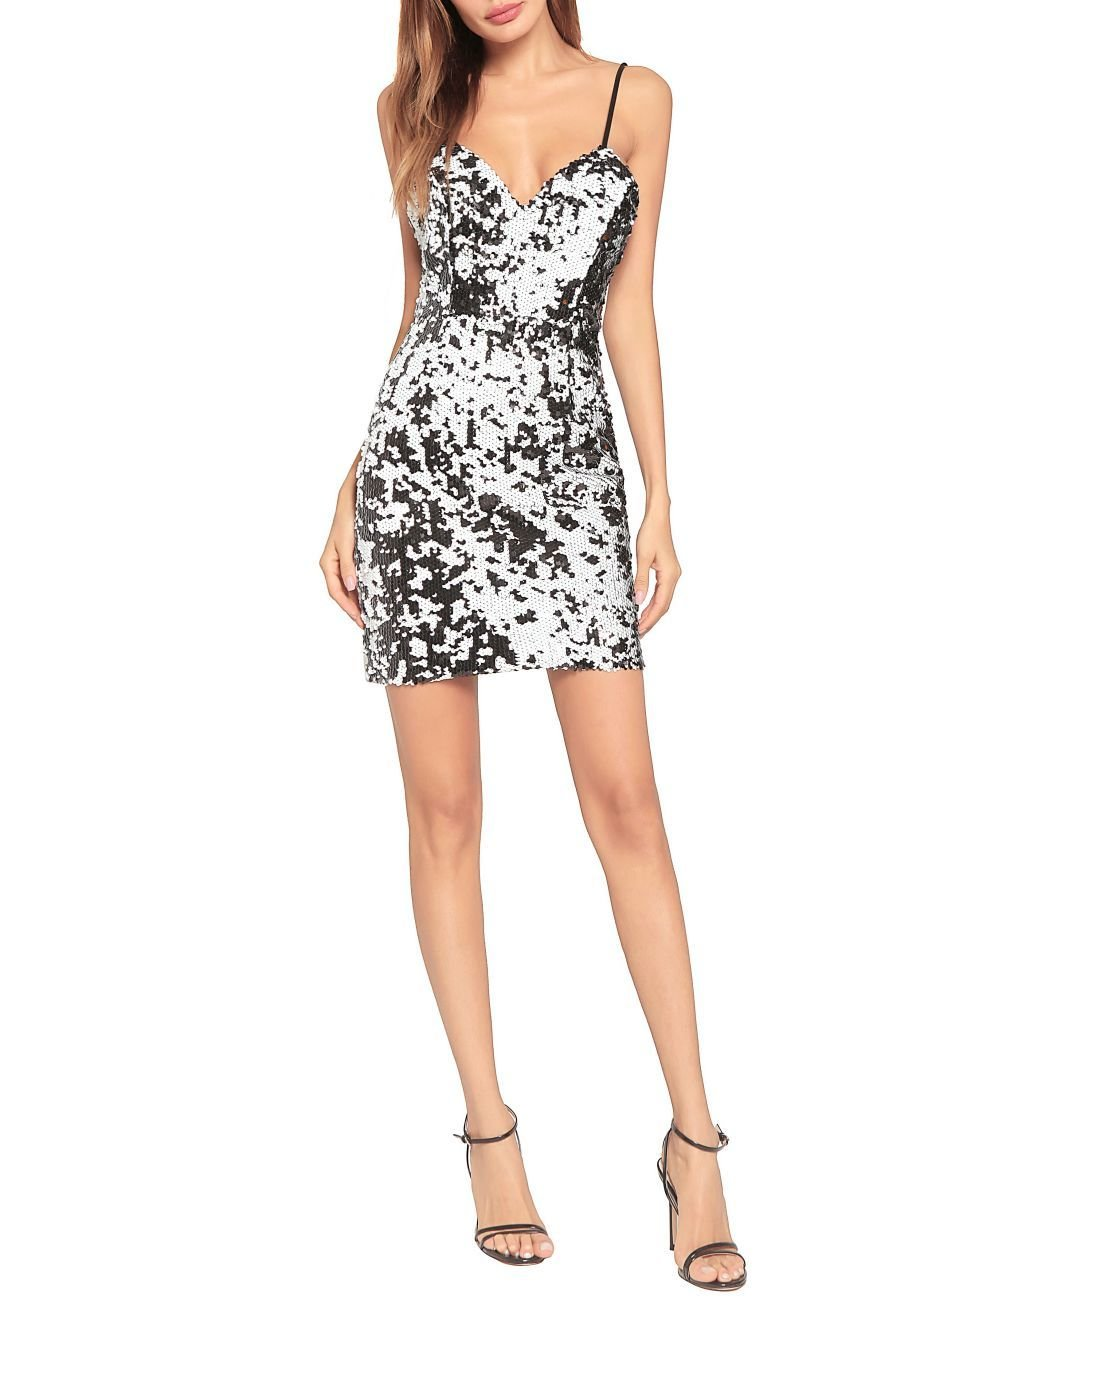 Black and Silver Patterned Slip Dress with Sequins